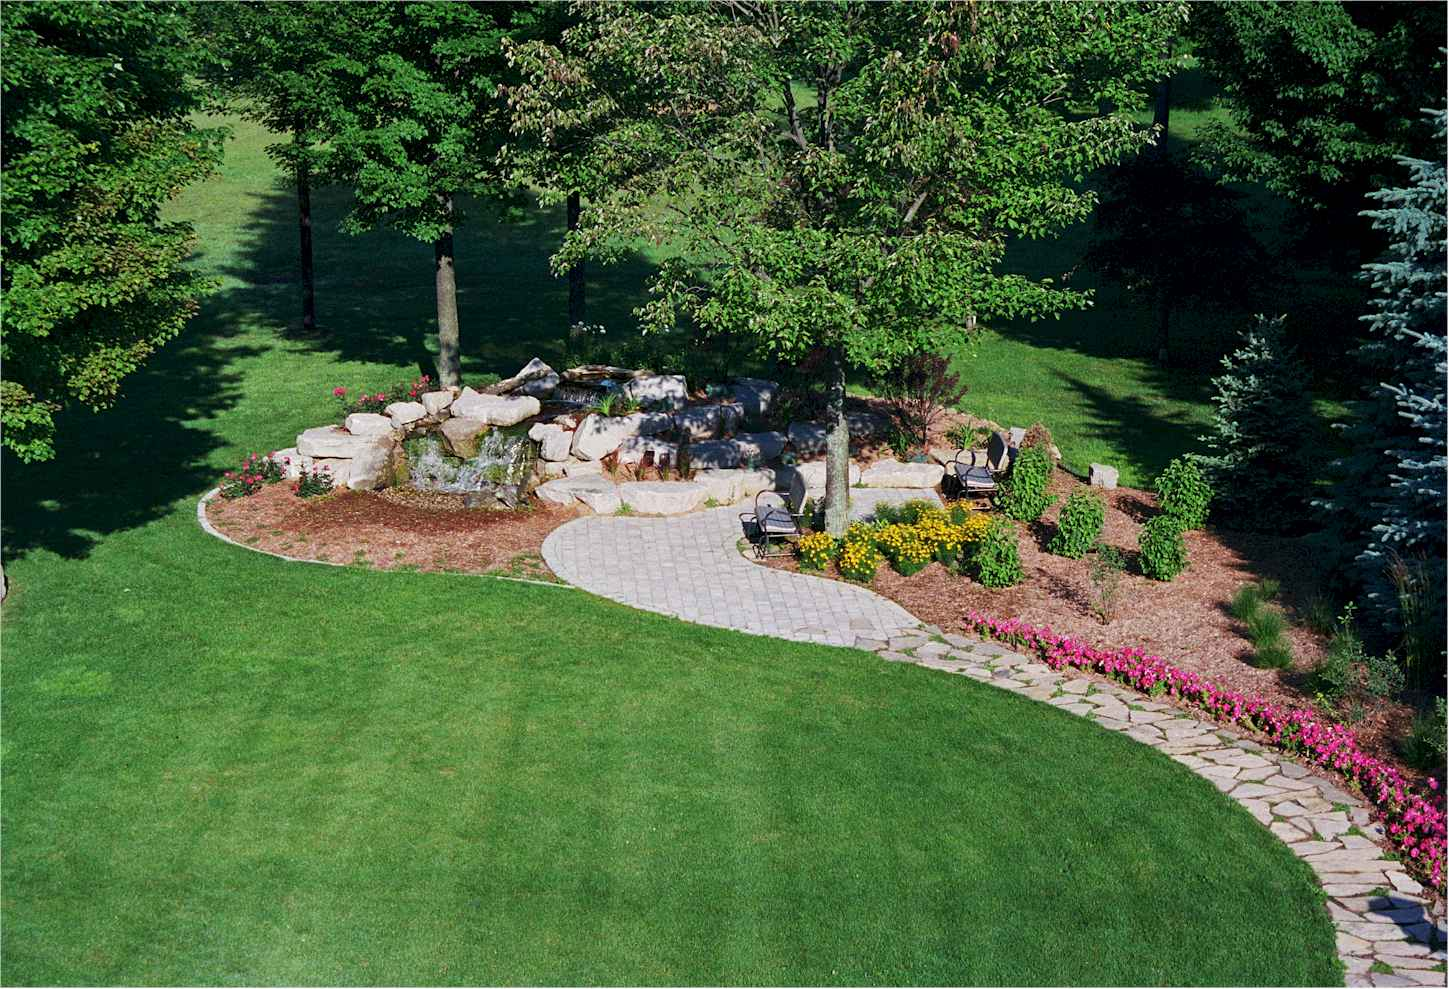 5 landscaping ideas to wow the neighbors for Lawn landscaping ideas